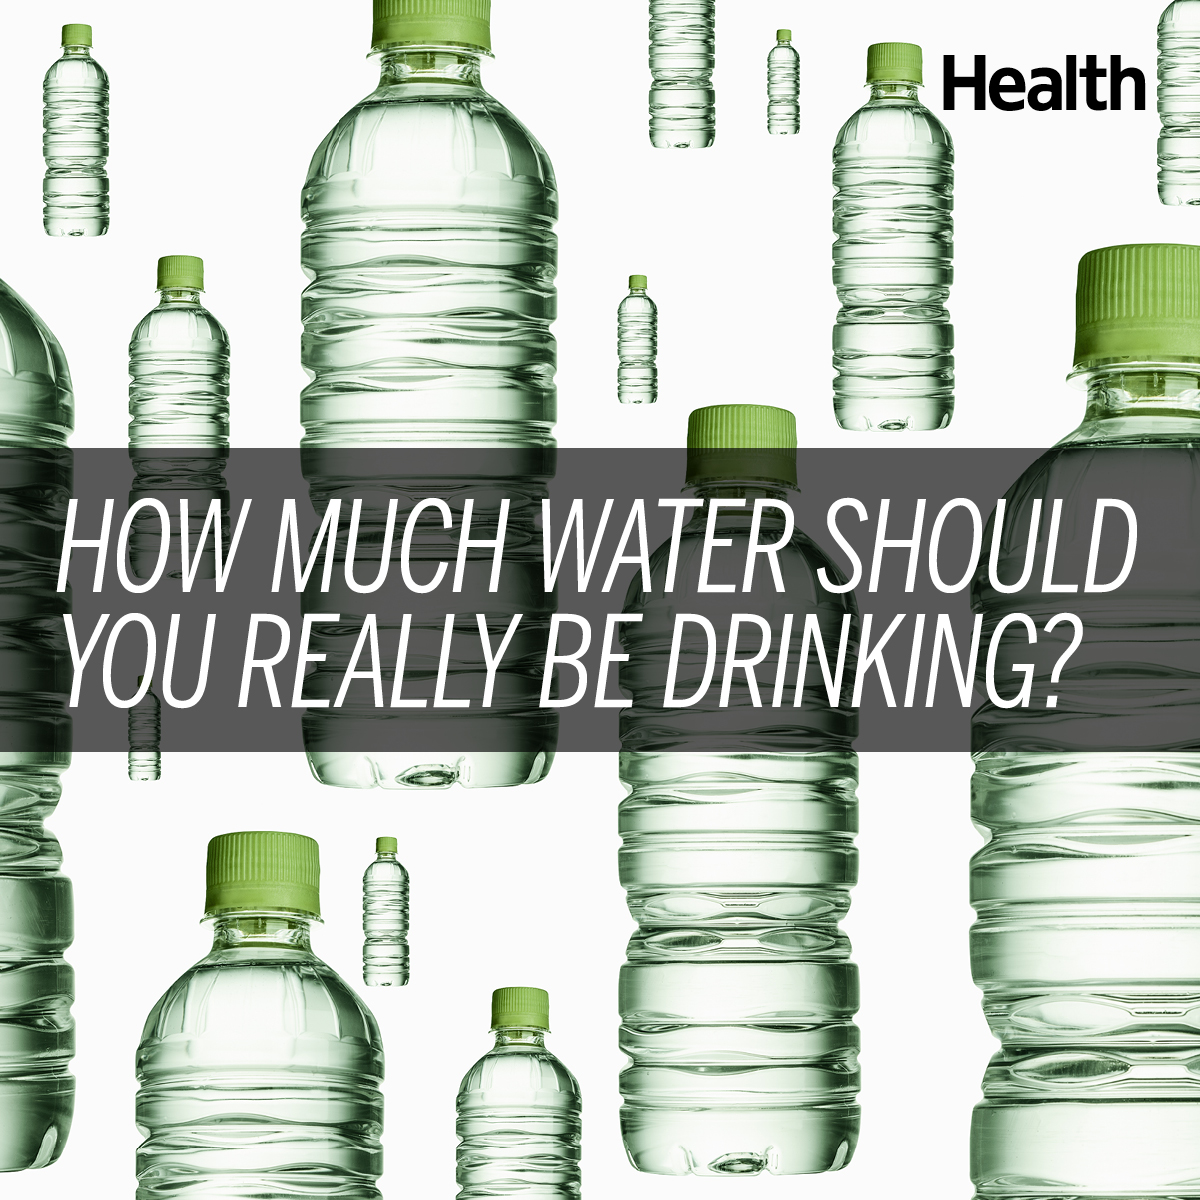 the amount of water you actually need per day - health